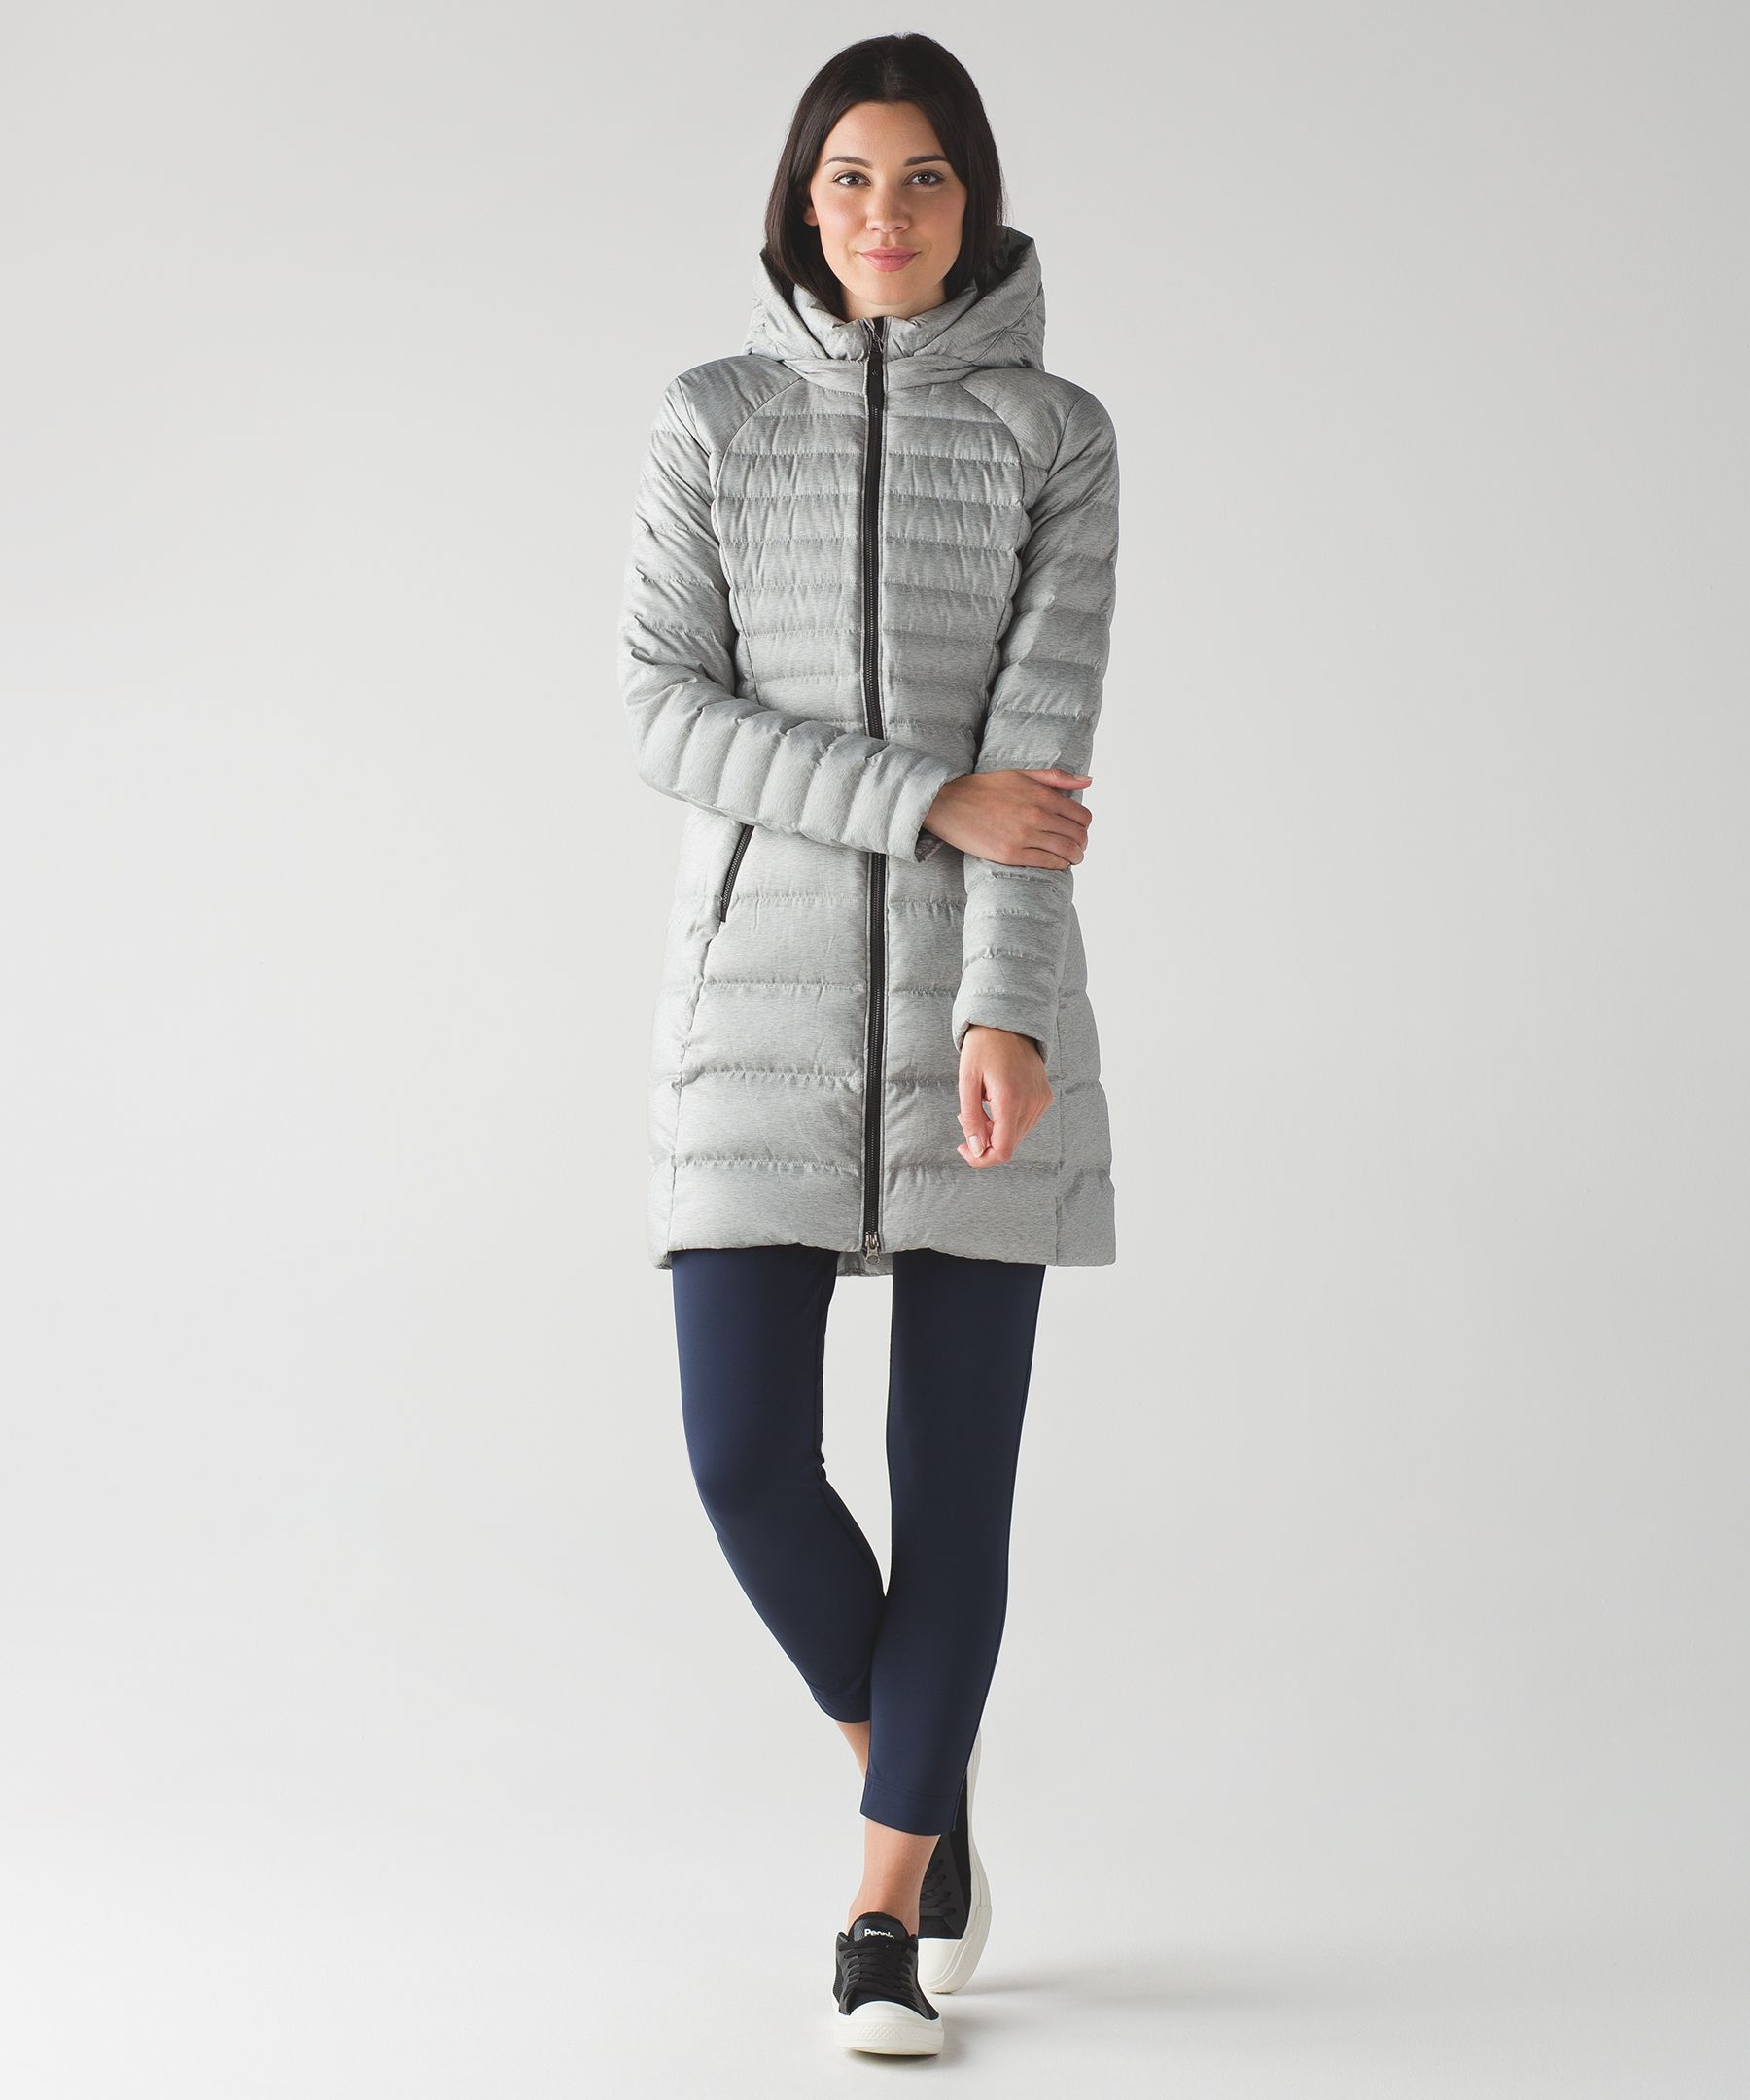 lululemon brave the cold jacket review